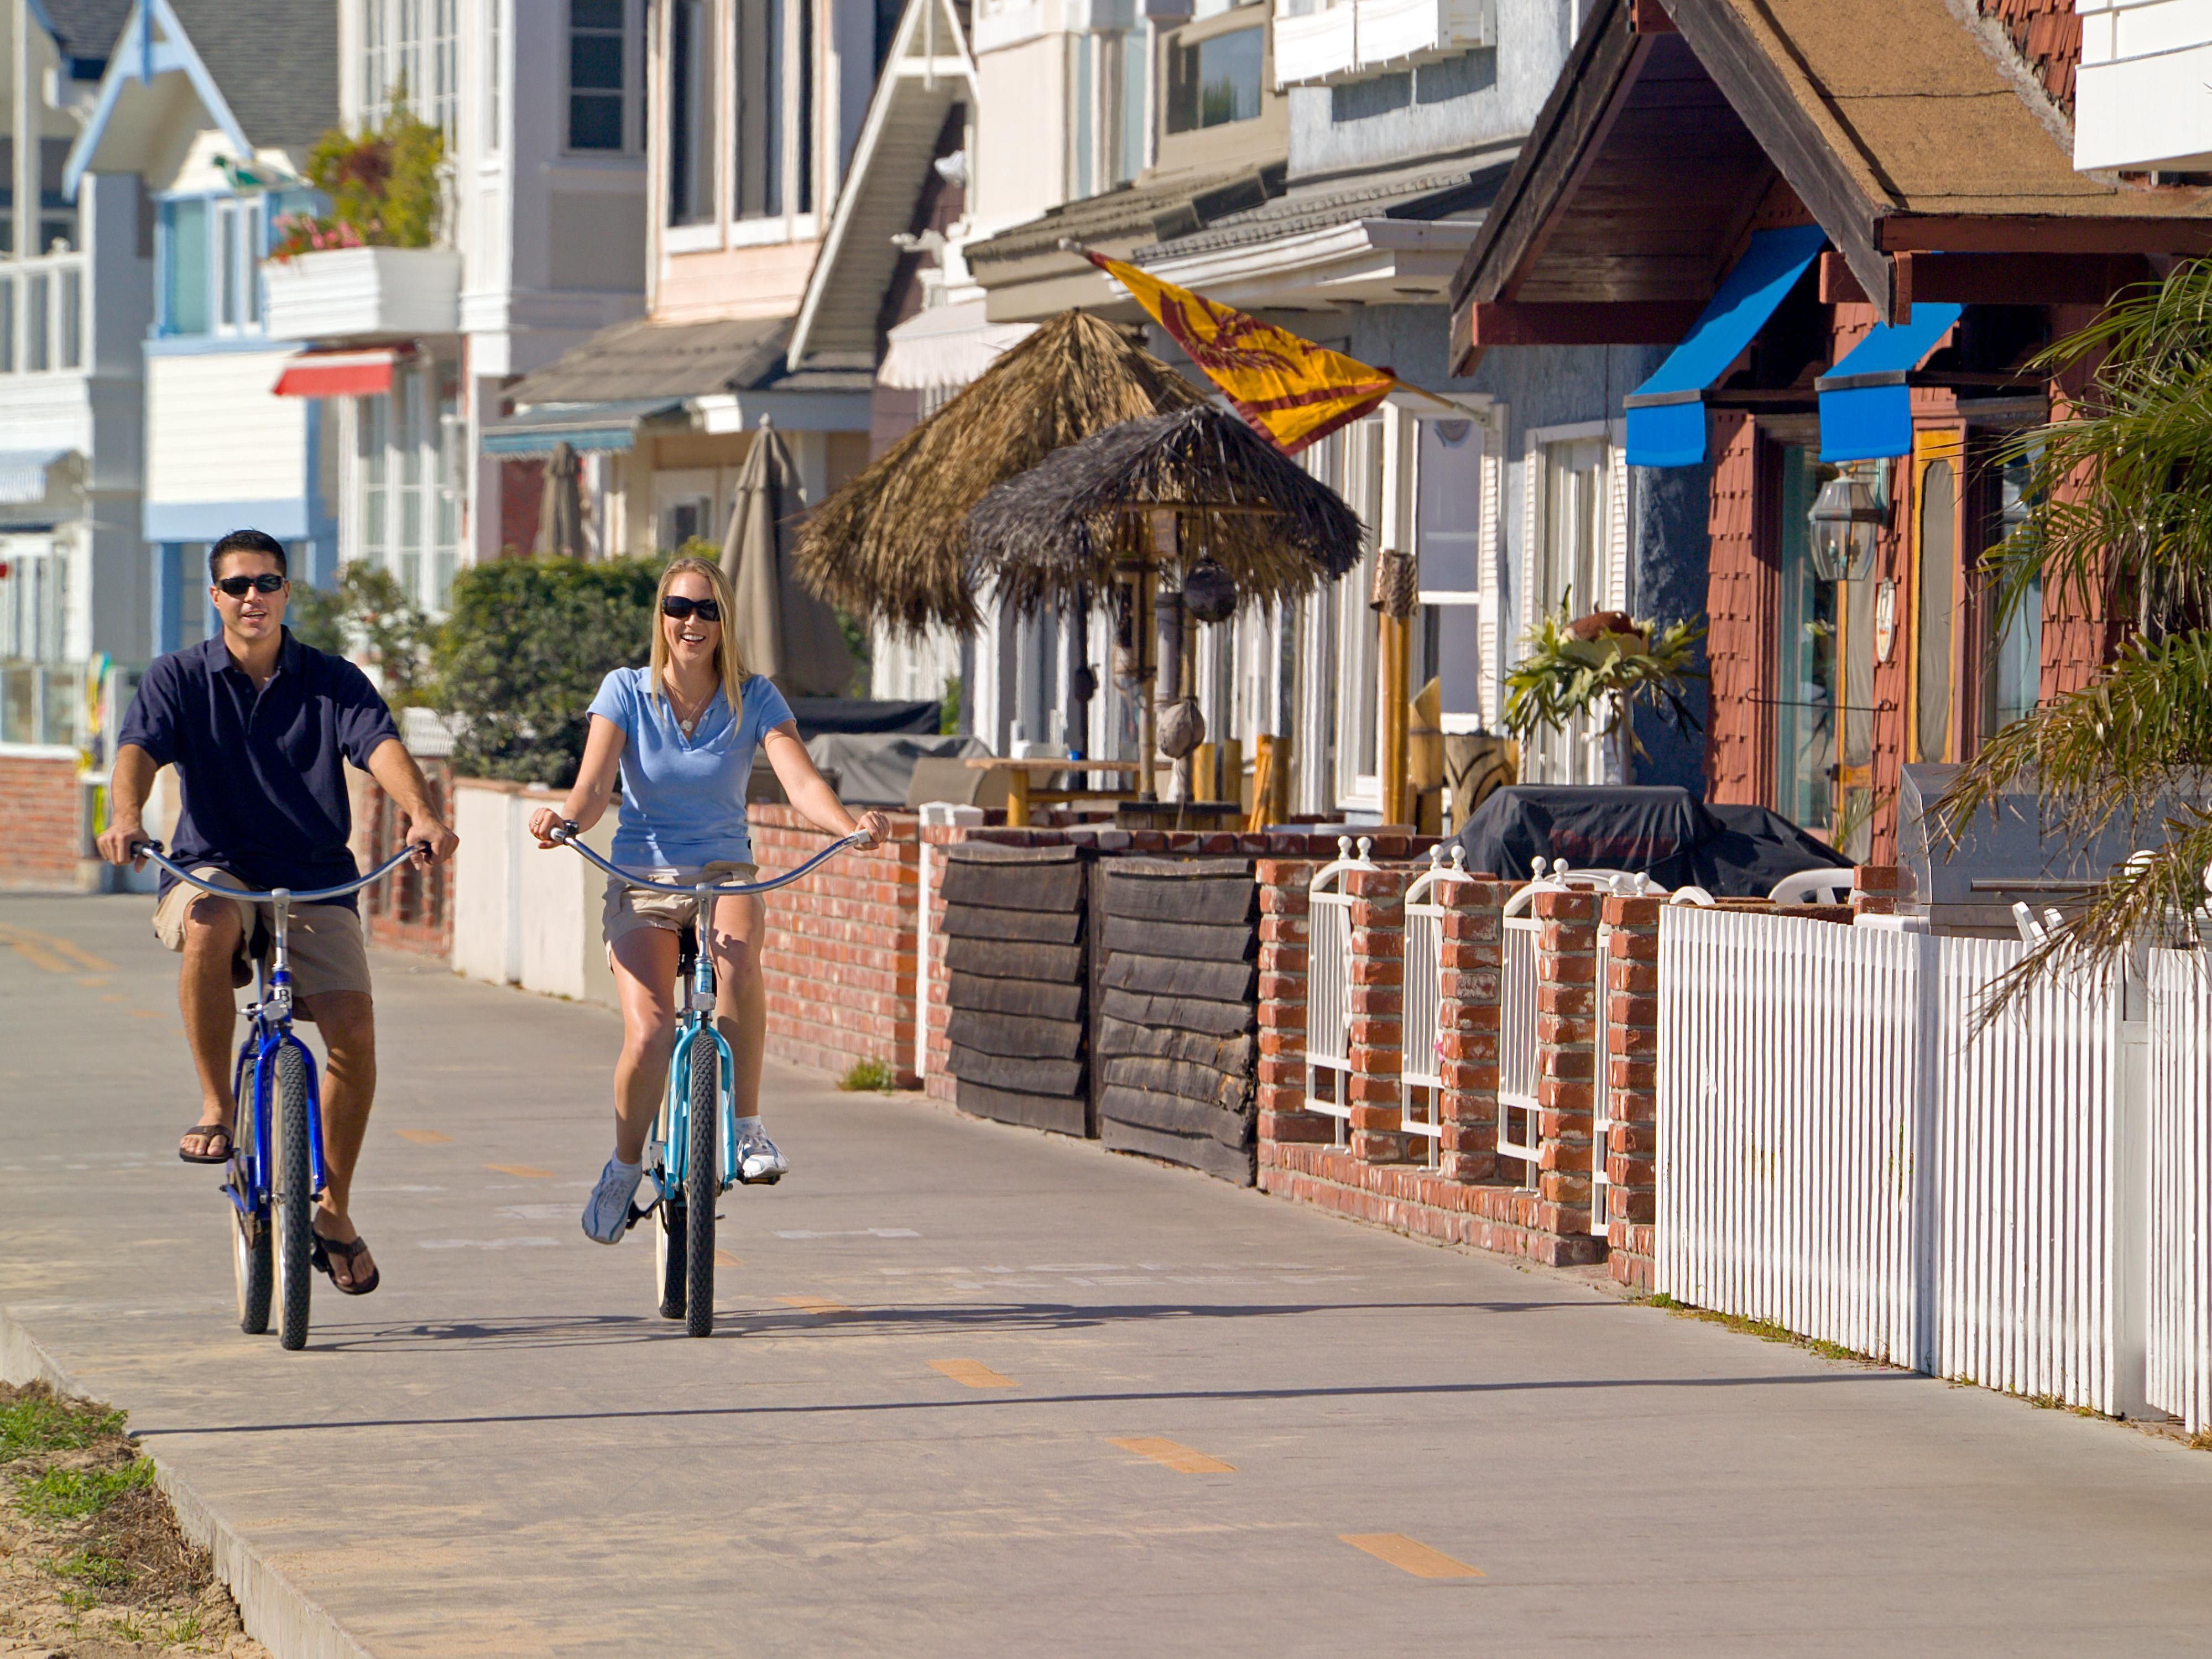 Biking along Balboa Peninsula Boardwalk